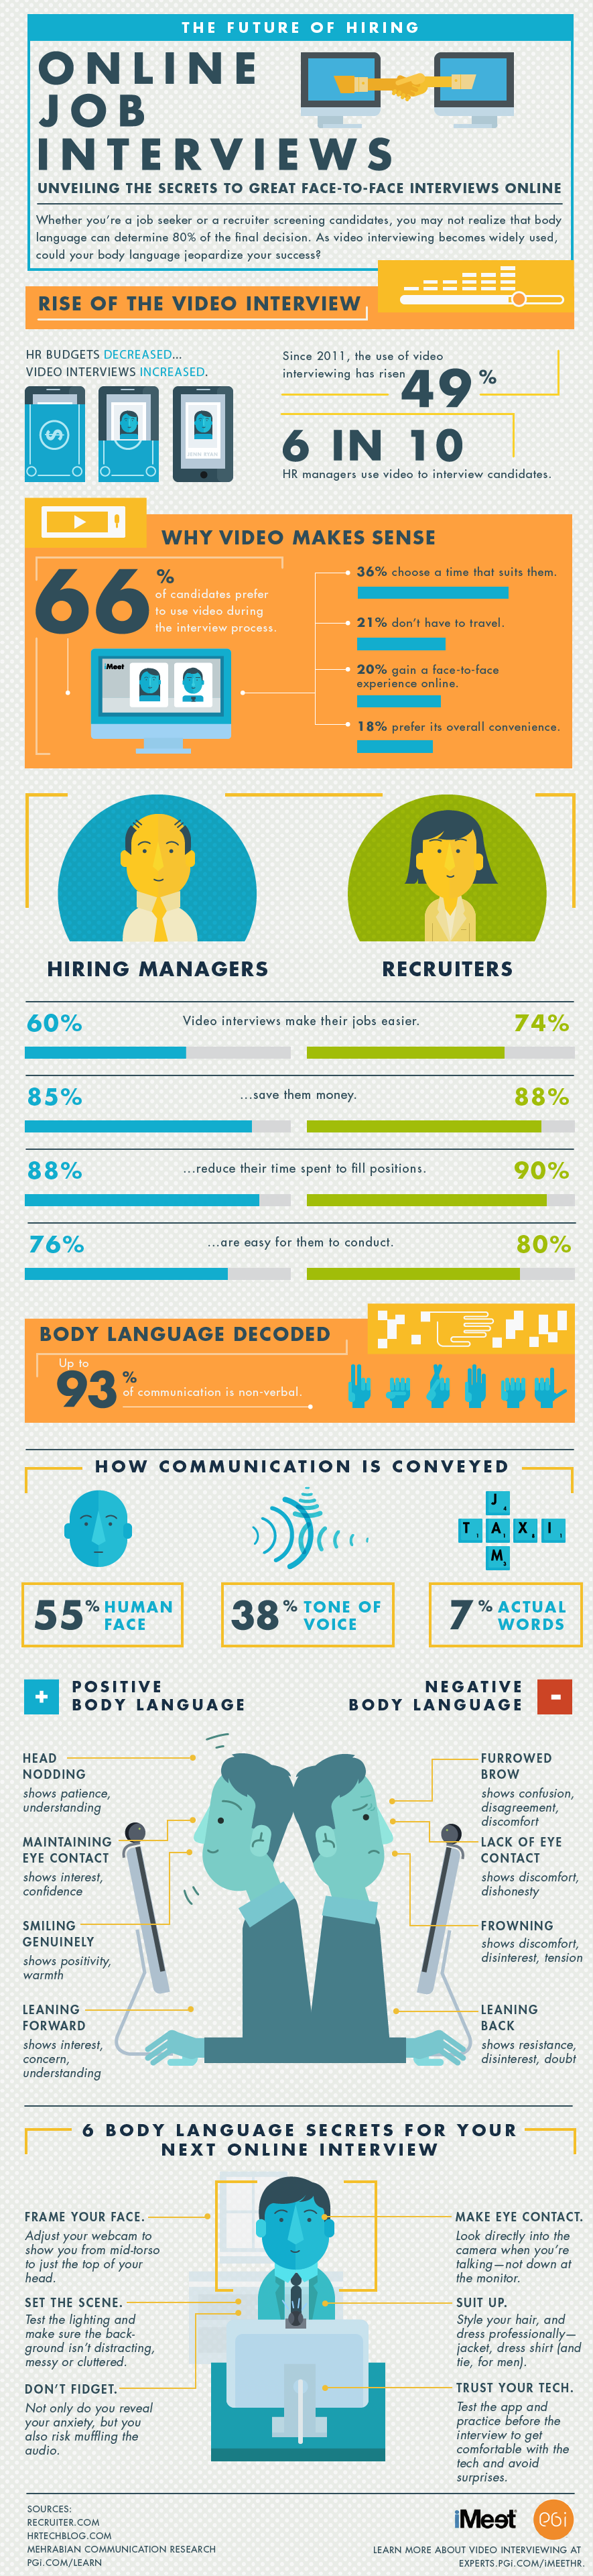 http://blog.pgi.com/2013/07/new-infographic-the-secrets-of-a-successful-online-interview-for-recruiters-and-job-seekers/